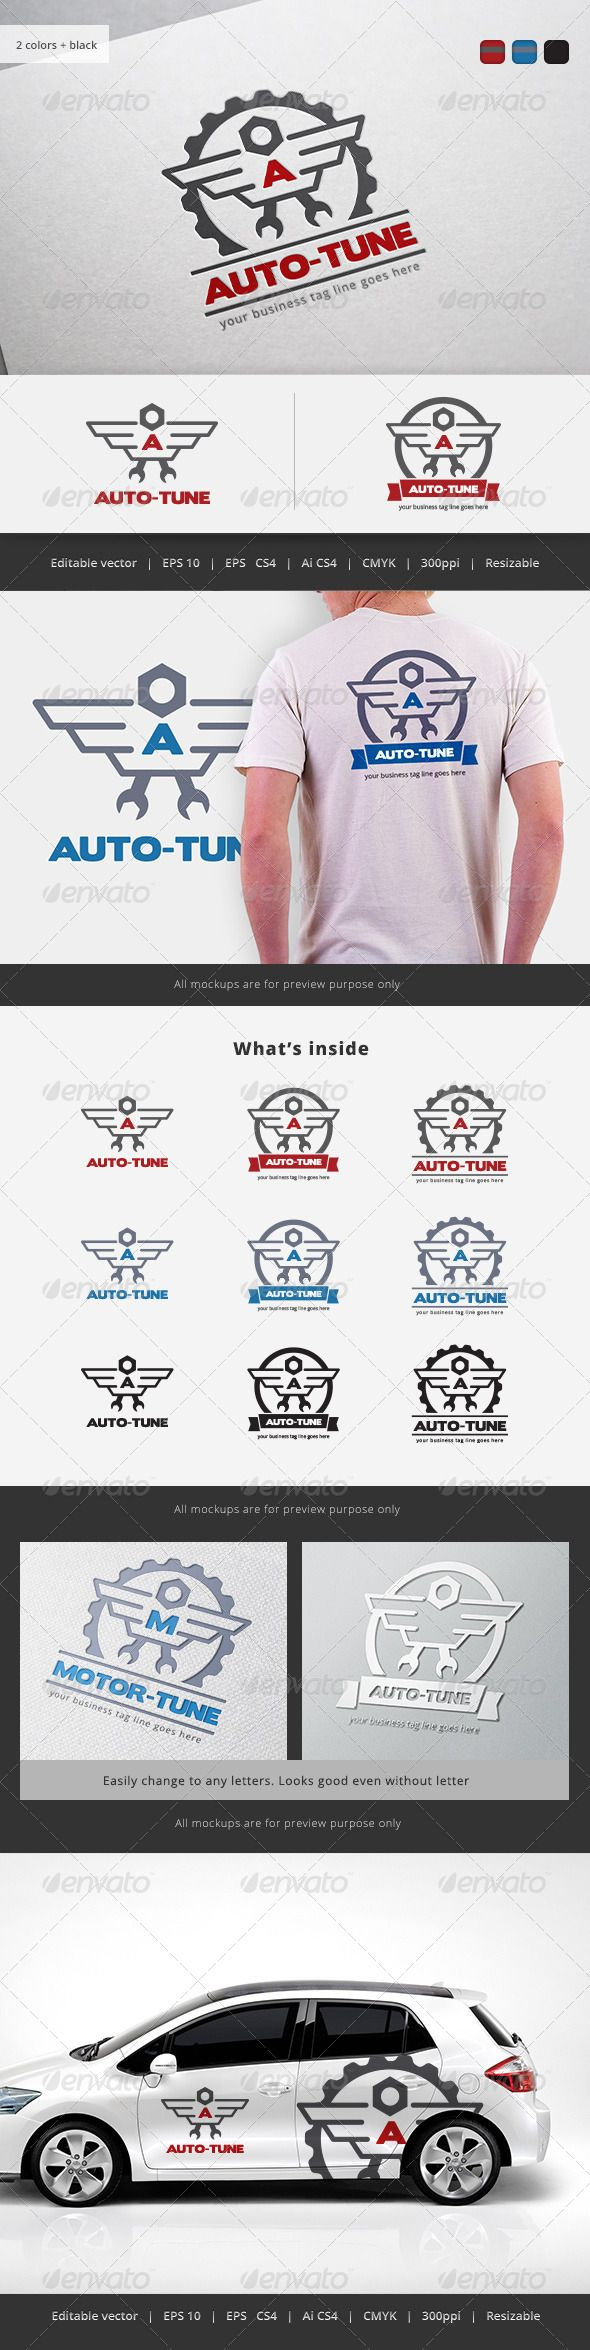 Auto Tune Logo — Vector EPS #nut #shop • Available here → https://graphicriver.net/item/auto-tune-logo/5722706?ref=pxcr